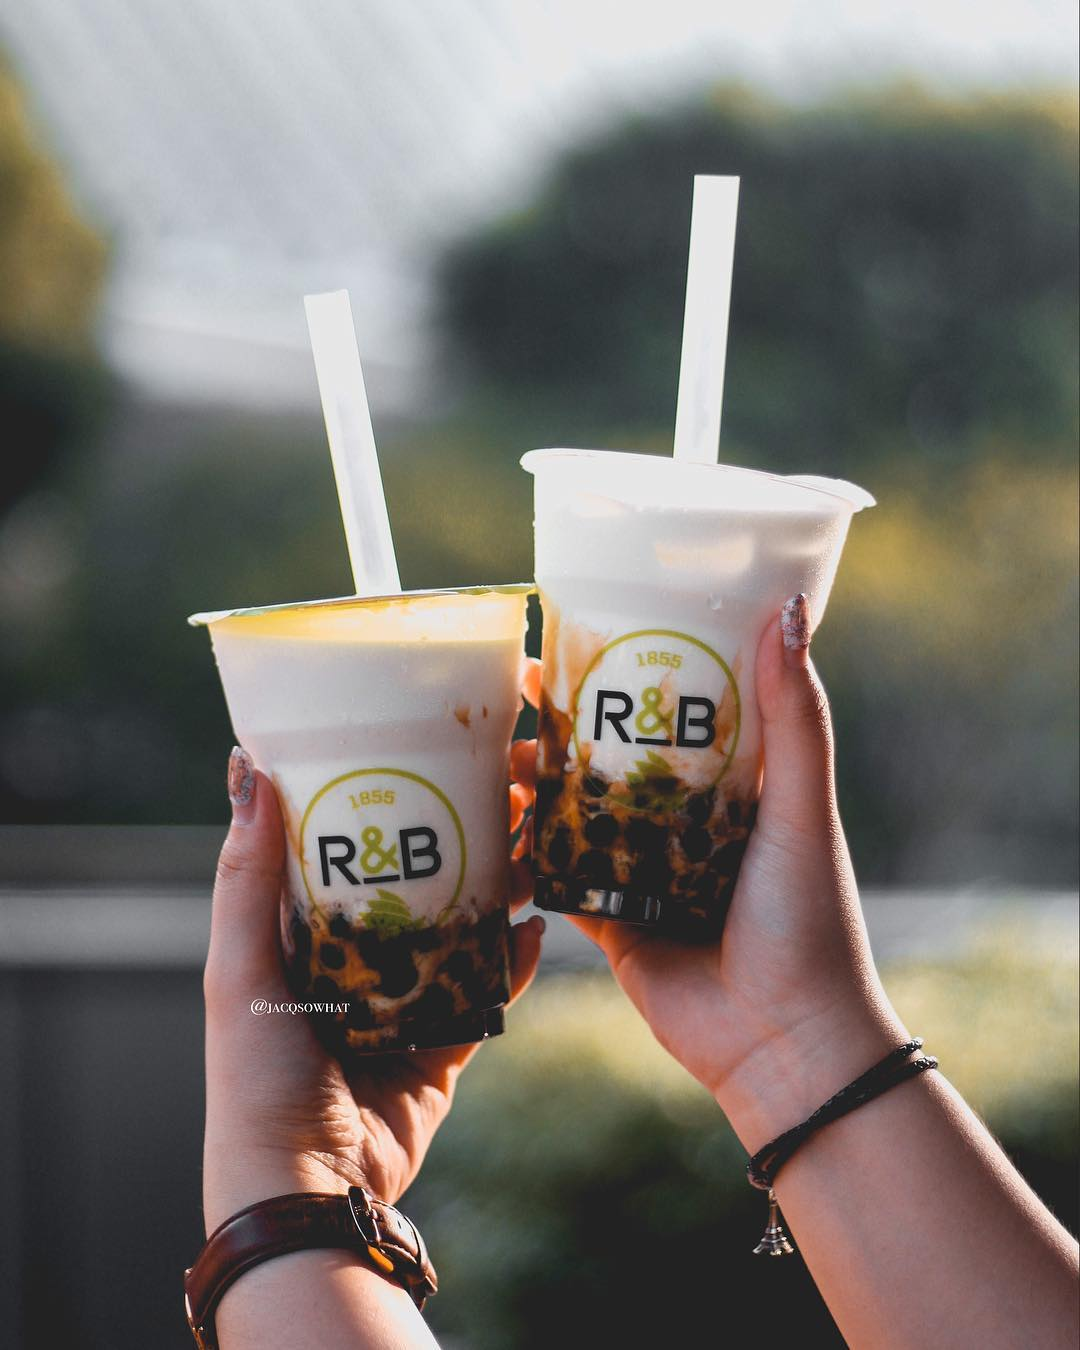 17 New Bubble Tea Stores In Singapore For A Change From The